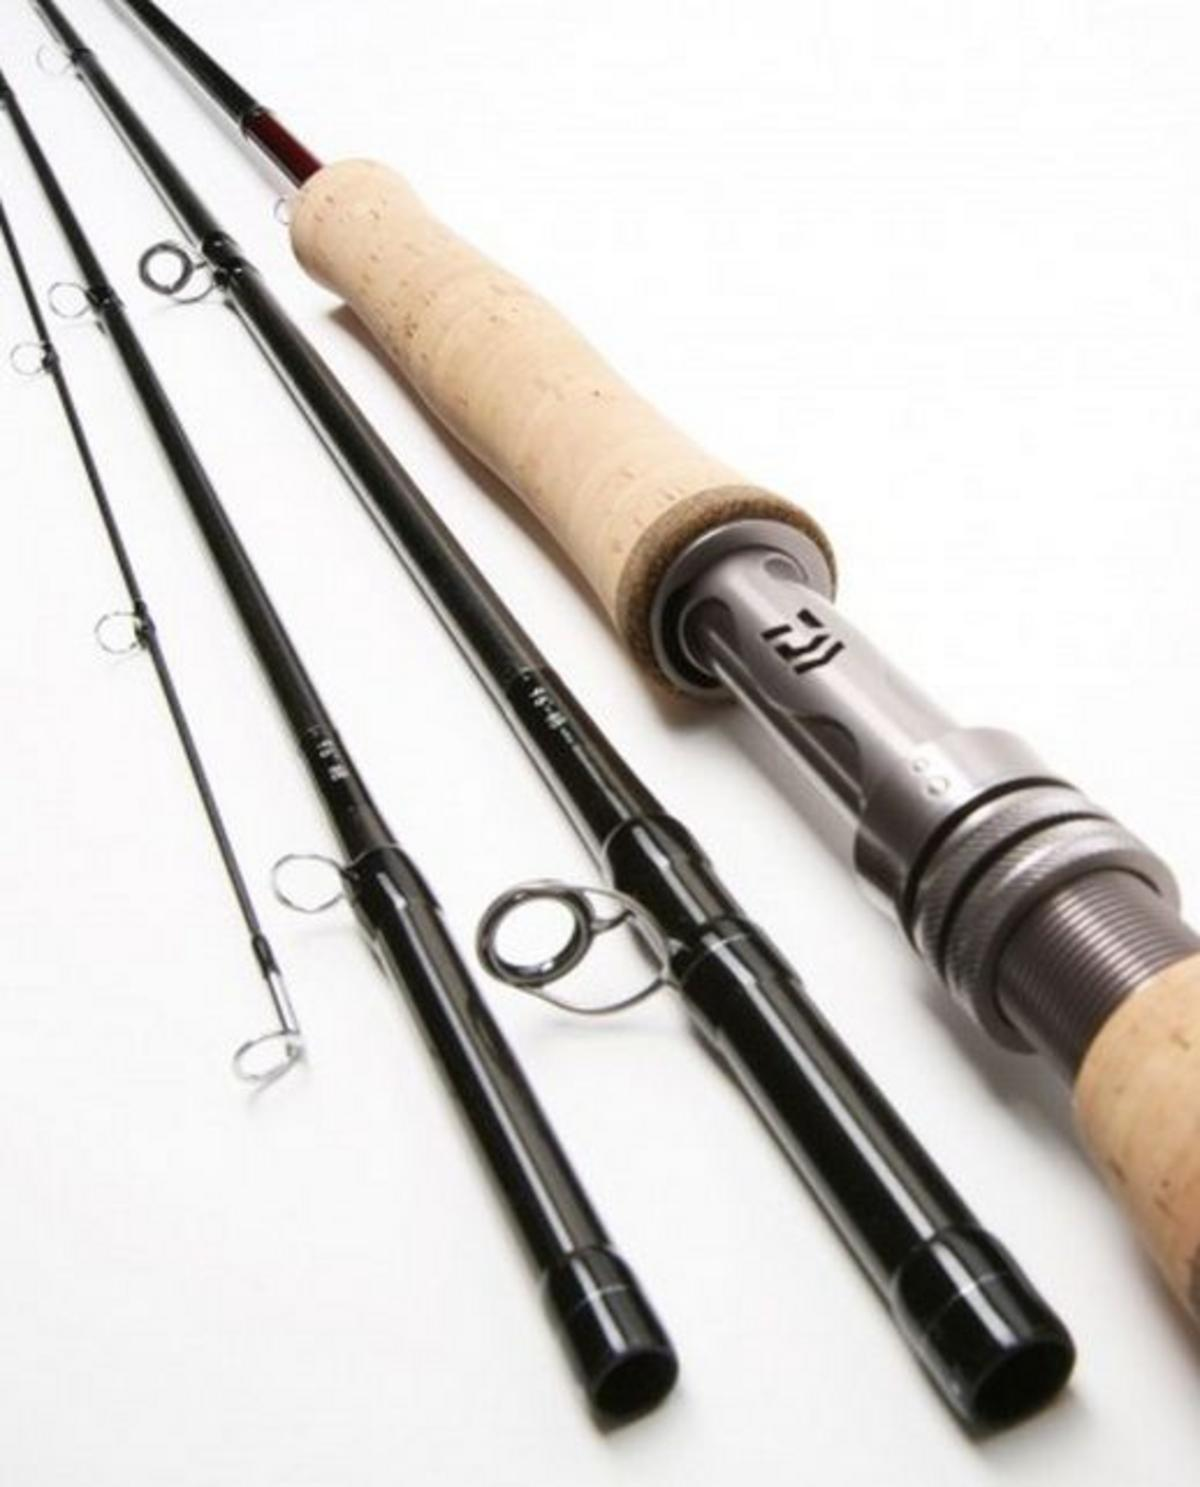 Special clearance daiwa newera trout fly rod neslrf1007 10 for Fishing rod clearance